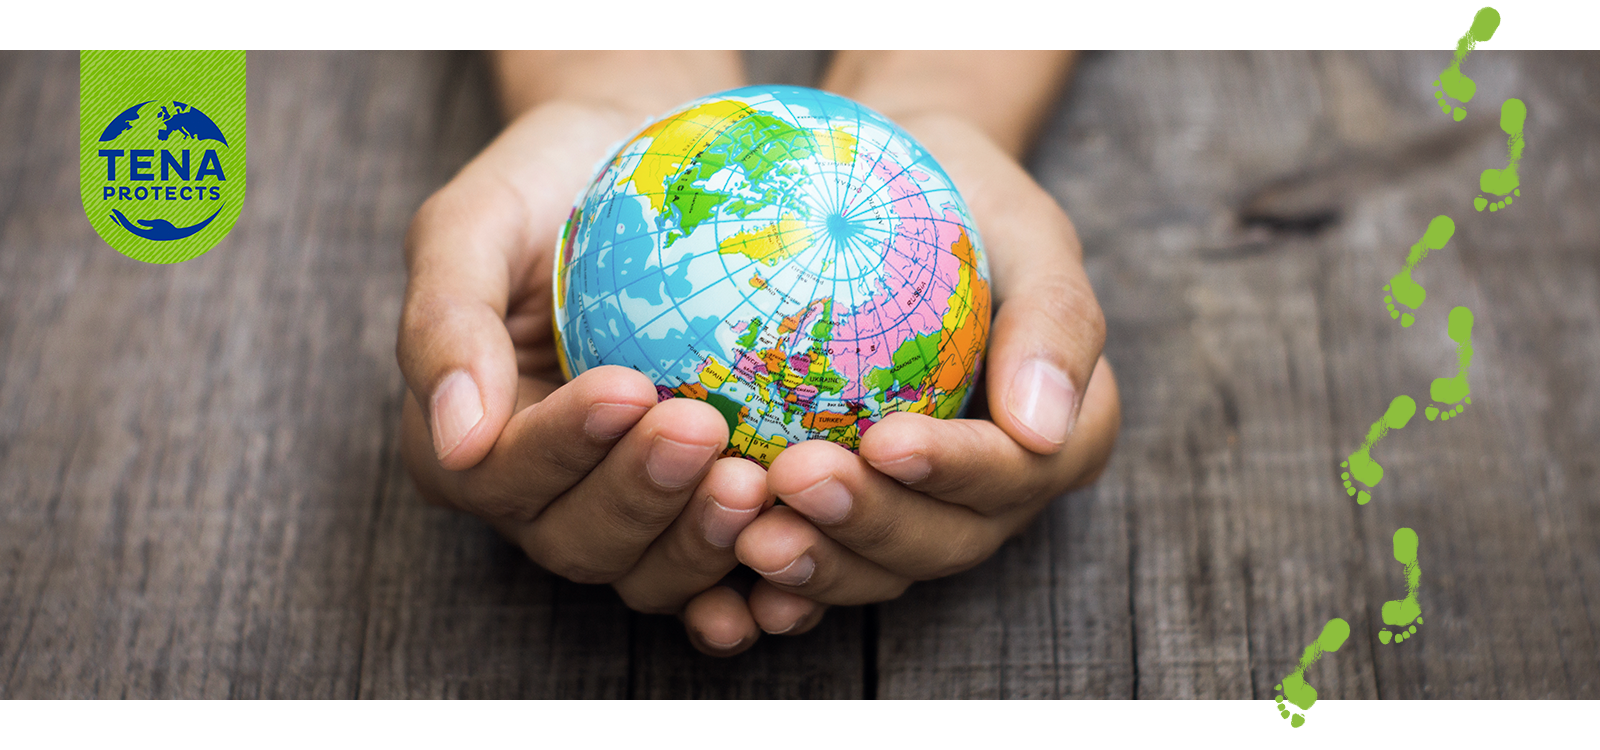 Two hands, resting on a wood table, are gently cupping a small colorful globe showing the northern hemisphere.